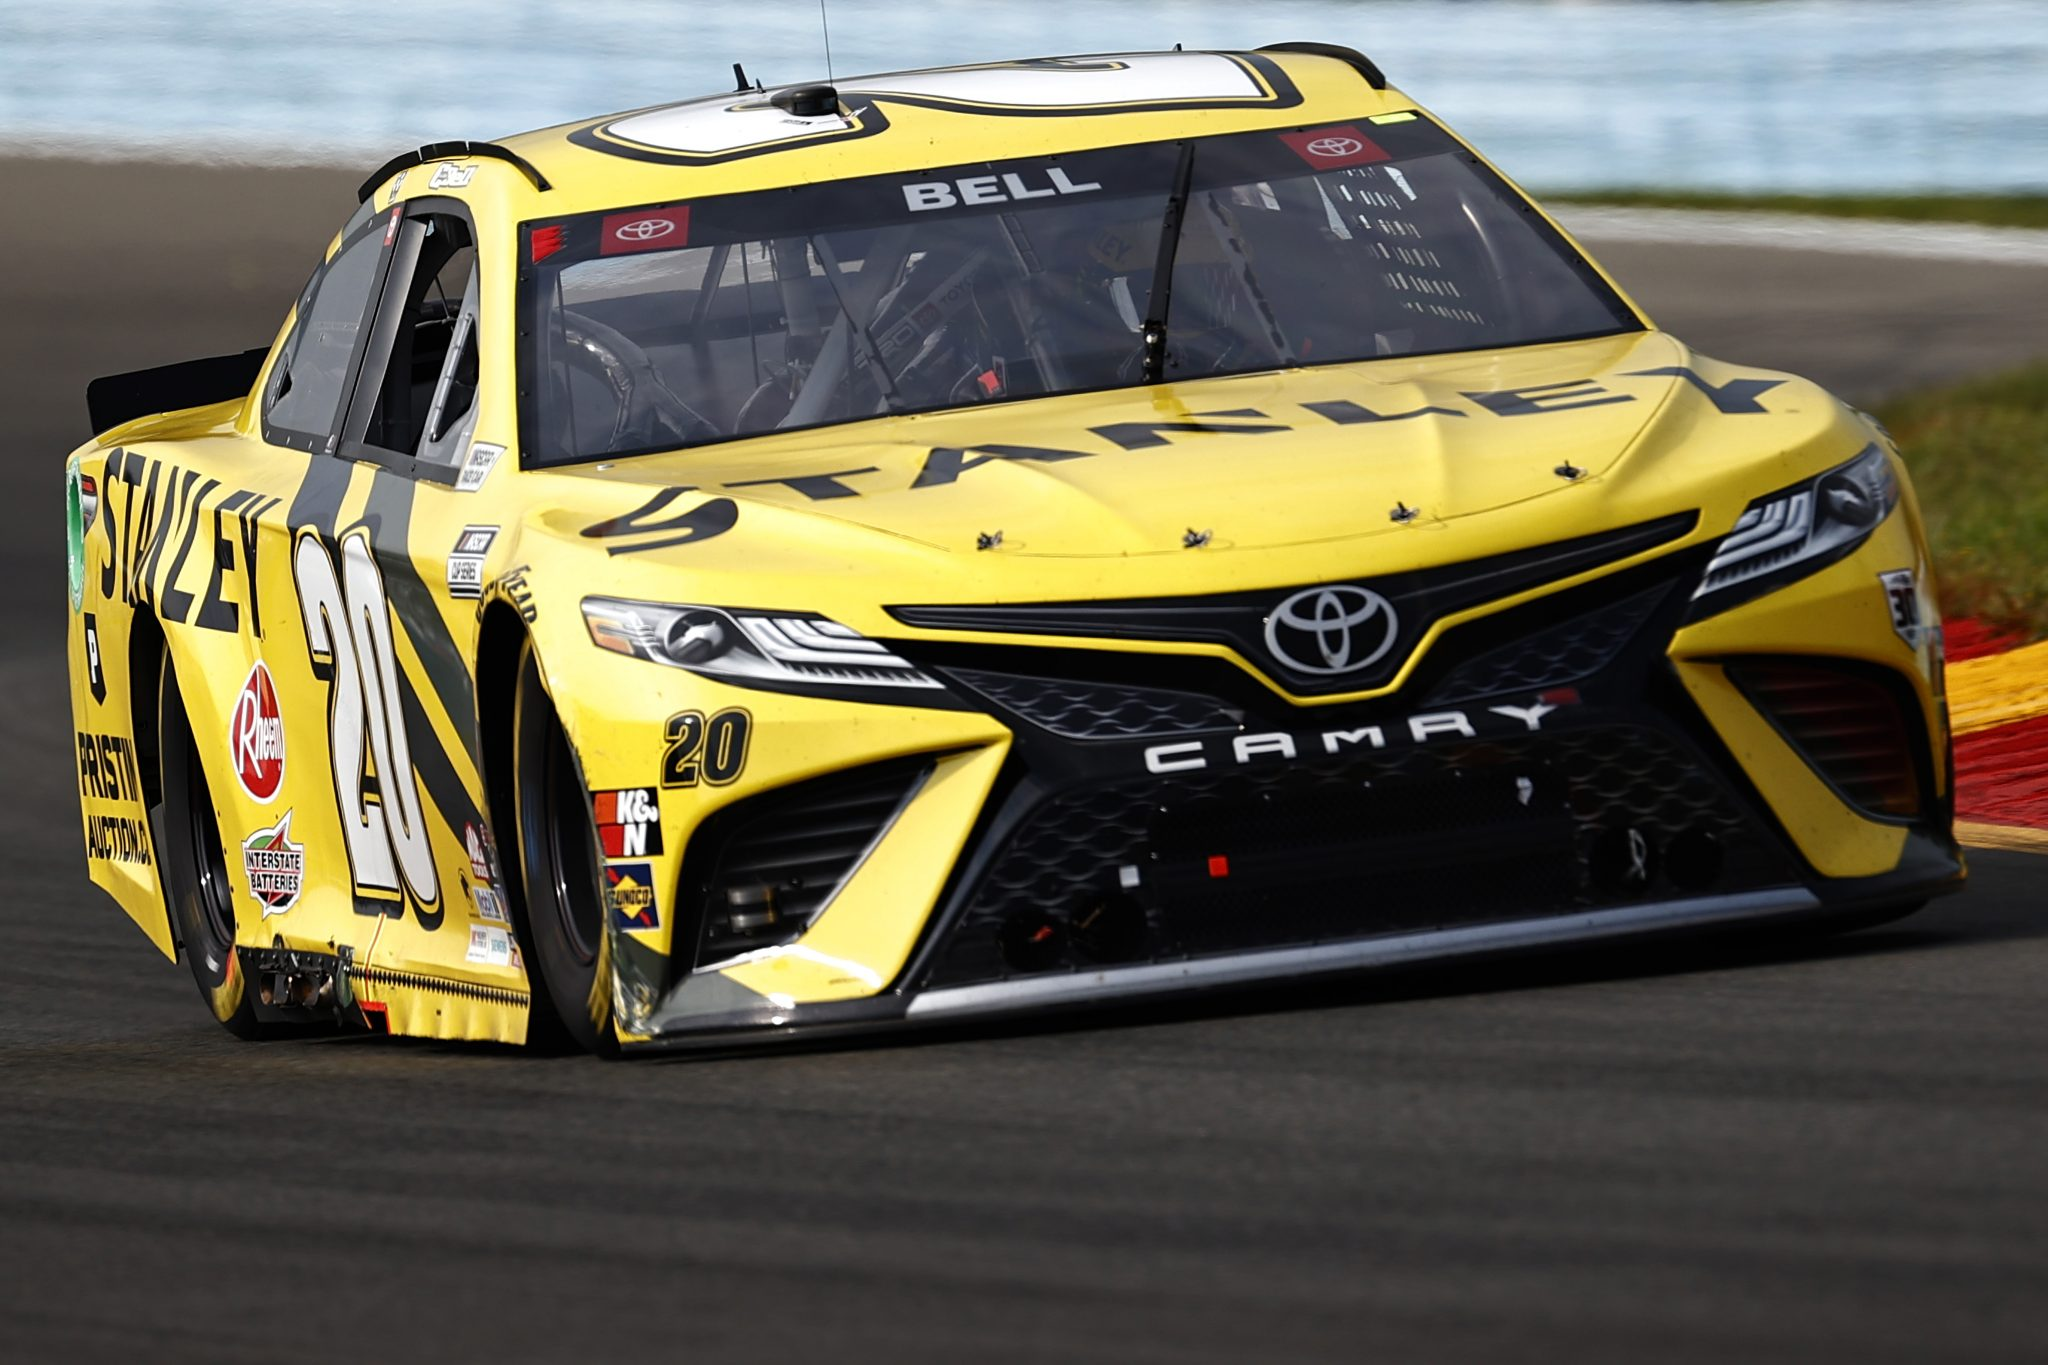 WATKINS GLEN, NEW YORK - AUGUST 08: Christopher Bell, driver of the #20 STANLEY Toyota, drives during the NASCAR Cup Series Go Bowling at The Glen at Watkins Glen International on August 08, 2021 in Watkins Glen, New York. (Photo by Jared C. Tilton/Getty Images) | Getty Images